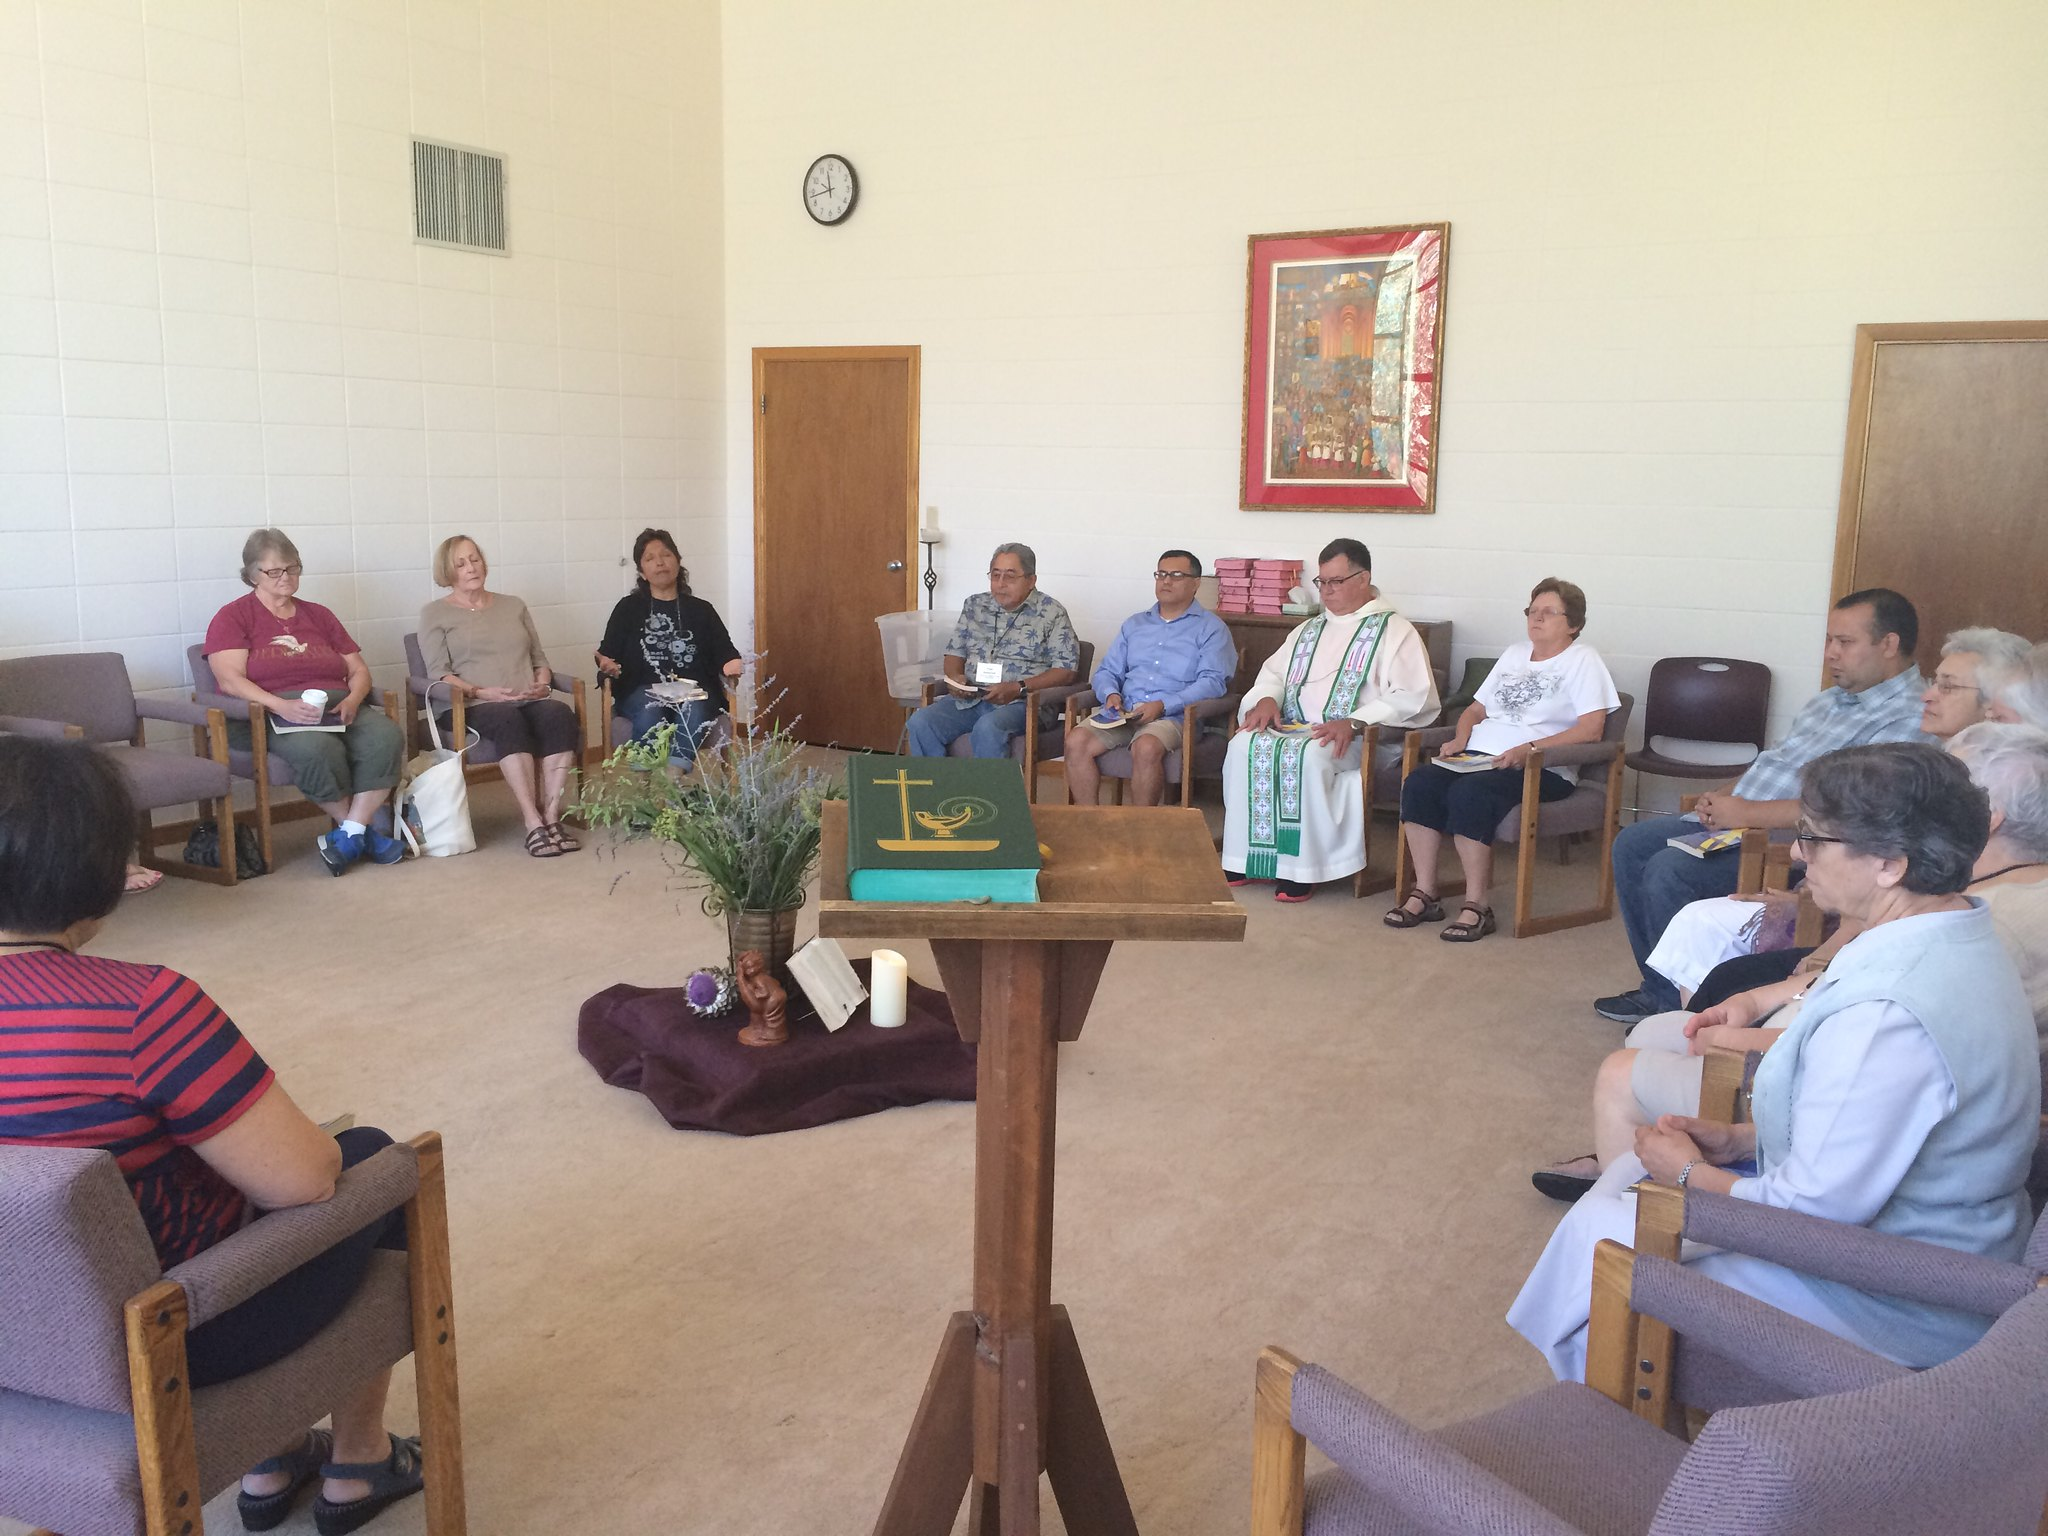 'Mystery, Tension, Polarities' A Six-Day Silent Directed Retreat (June 14-20, 2015) St. Anthony Retreat Center, Three Rivers, CA